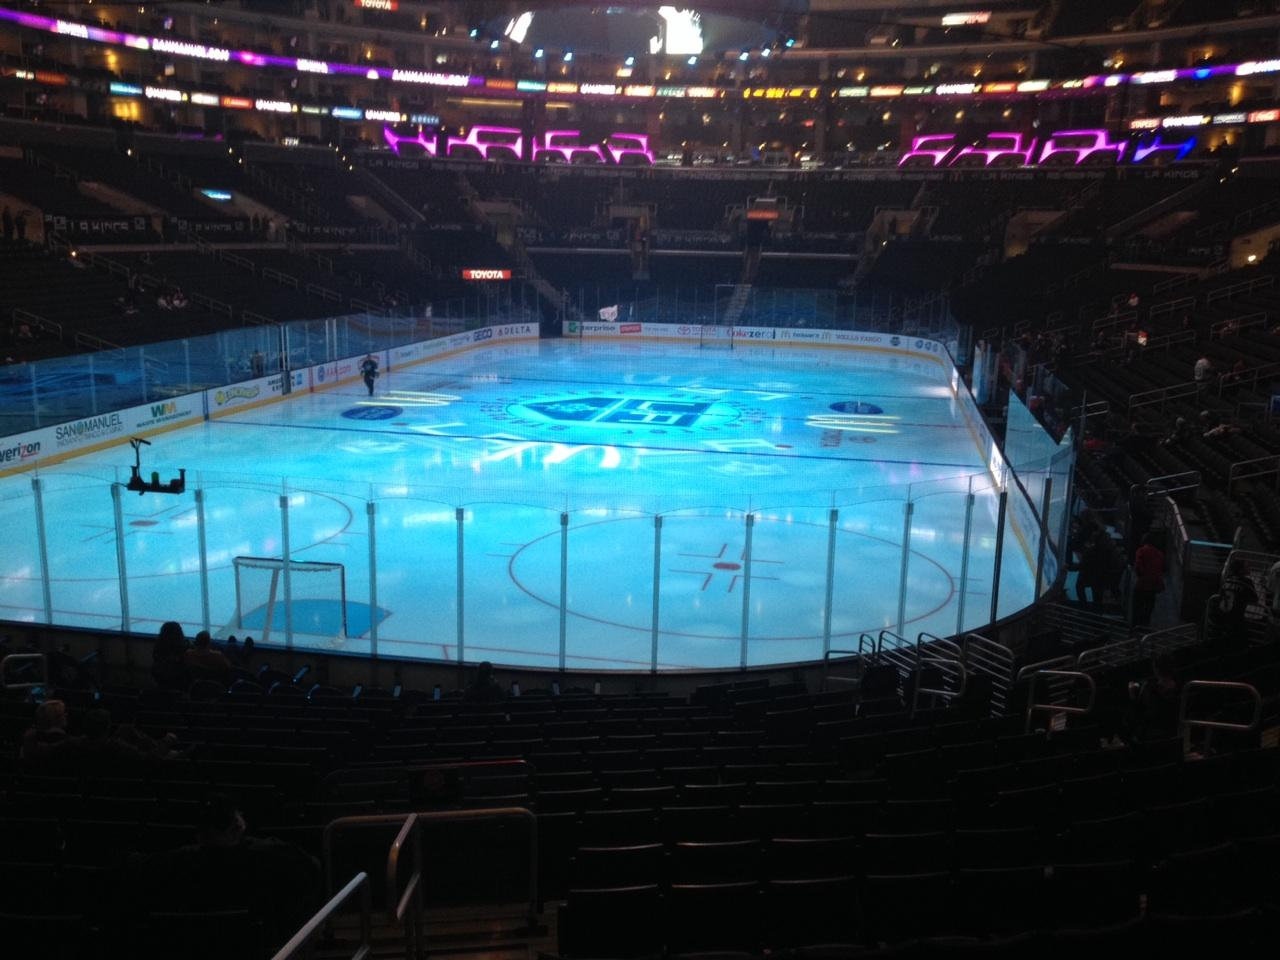 Staples Center Section 106 Row 20 Seat 17